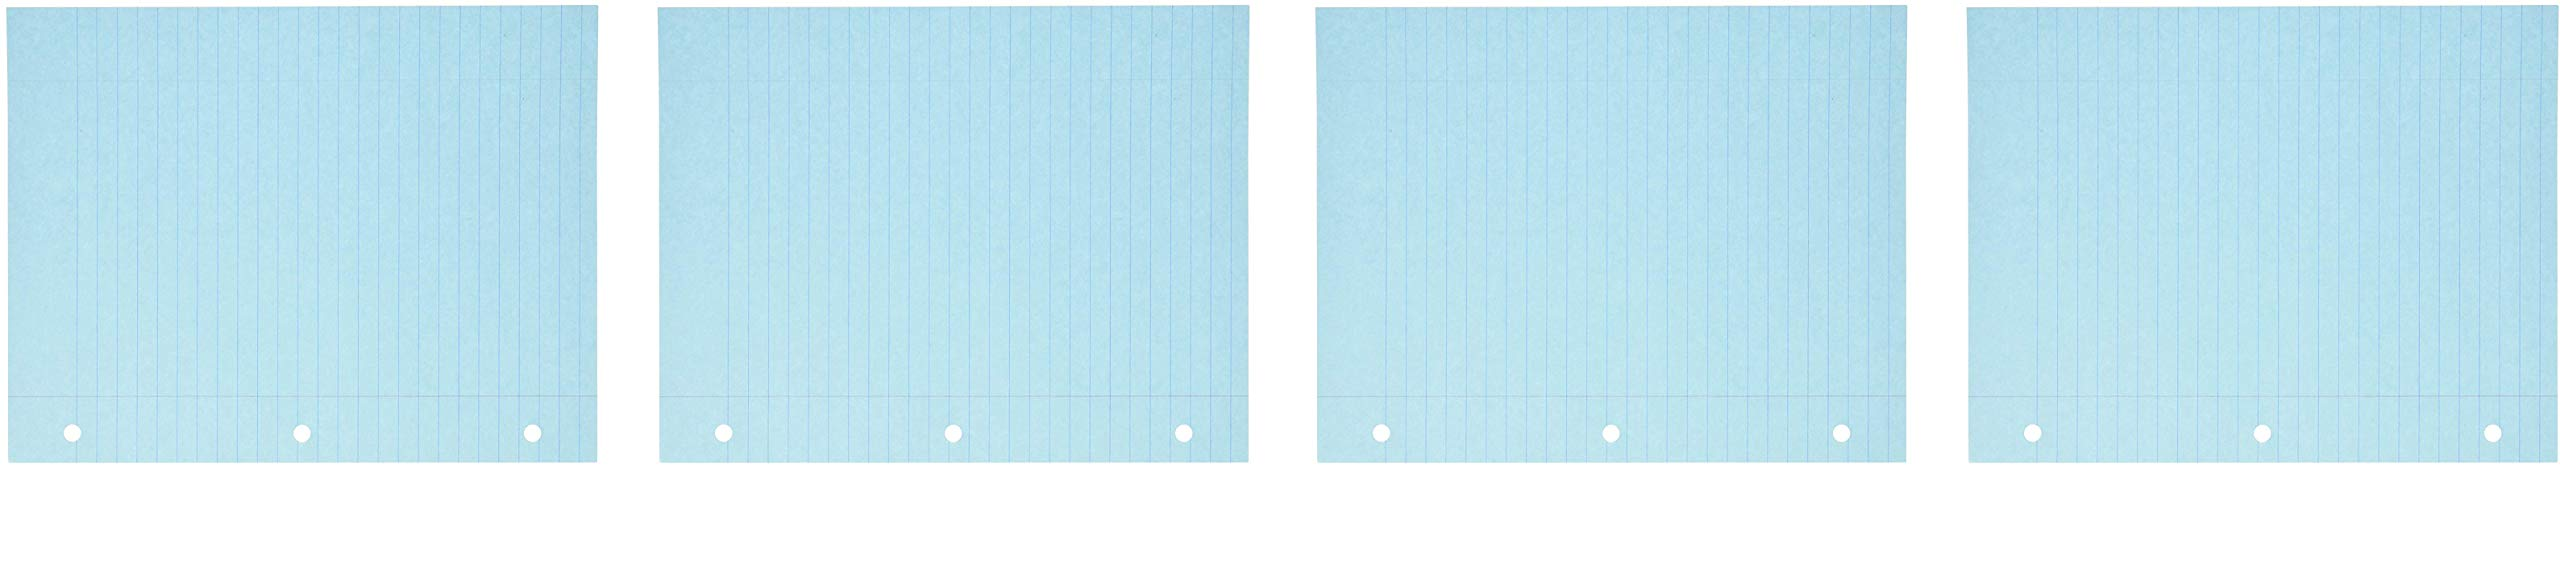 School Smart 3-Hole Punched Filler Paper, 8-1/2 x 11 Inches, Blue, 100 Sheets (4-Pack)